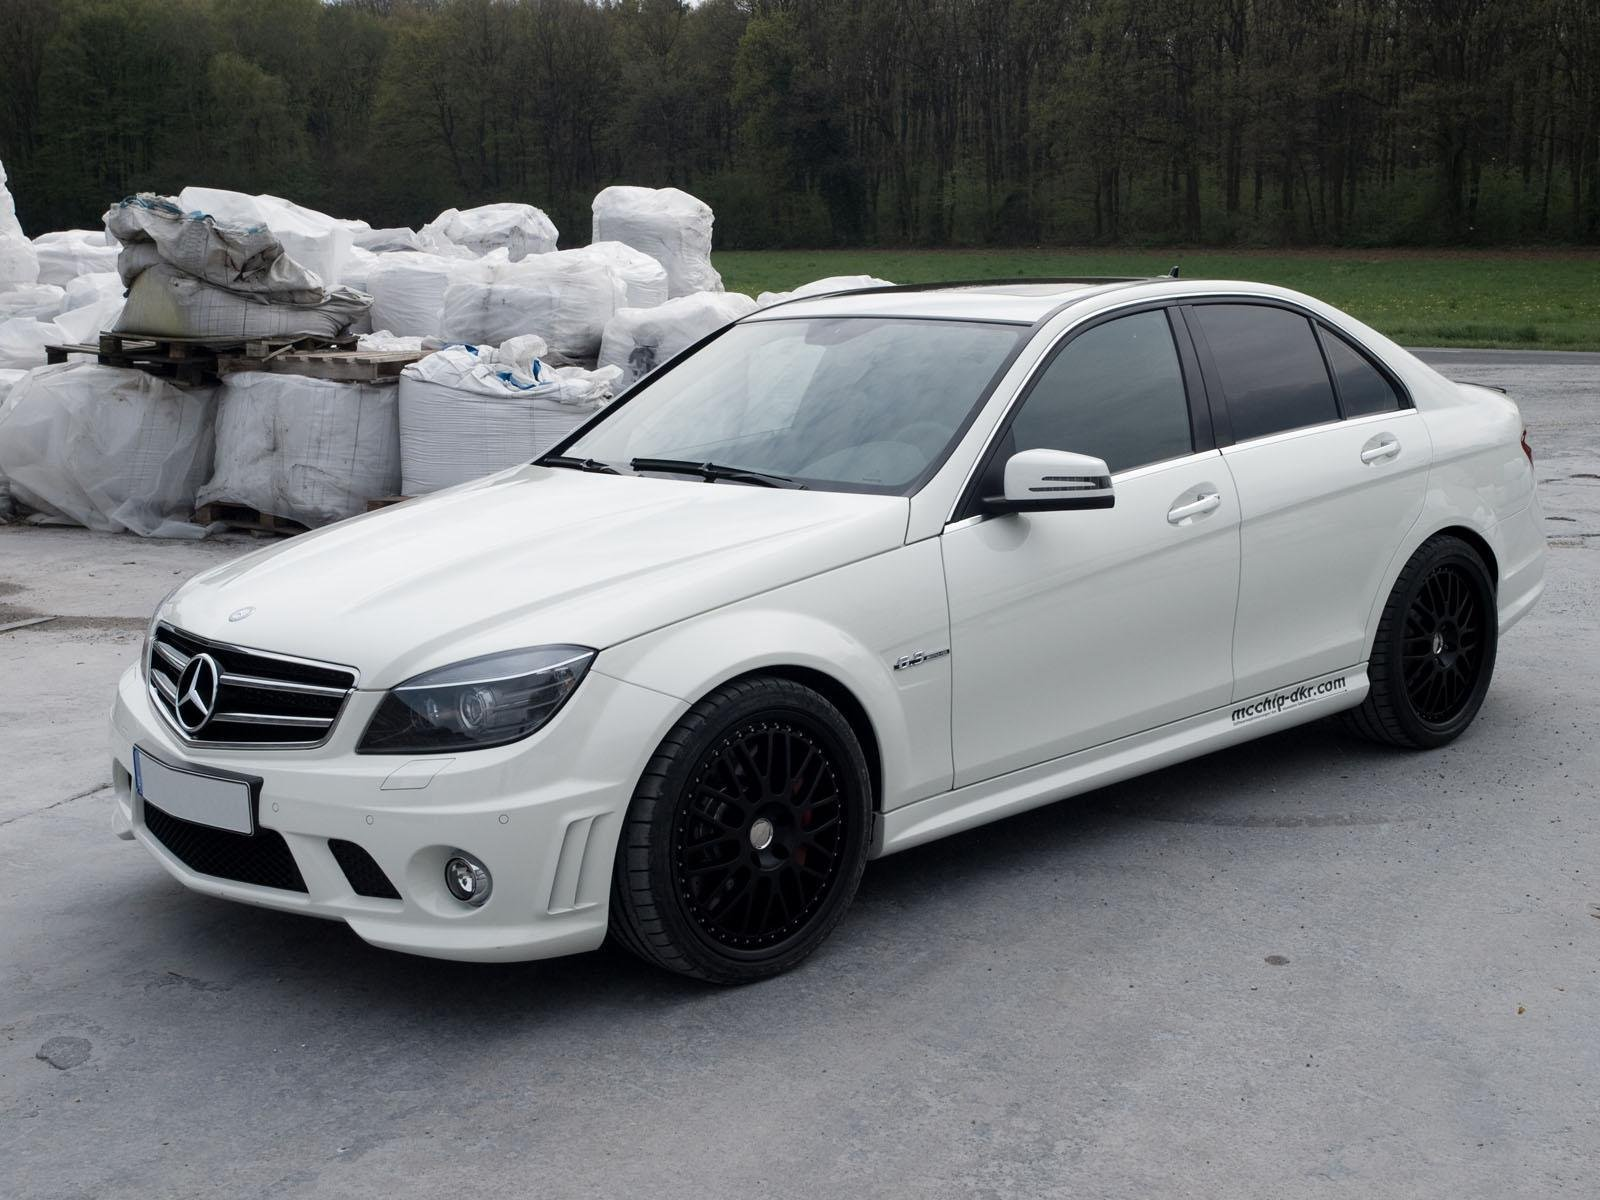 2011 mcchip mercedes c63 amg dark cars wallpapers. Black Bedroom Furniture Sets. Home Design Ideas